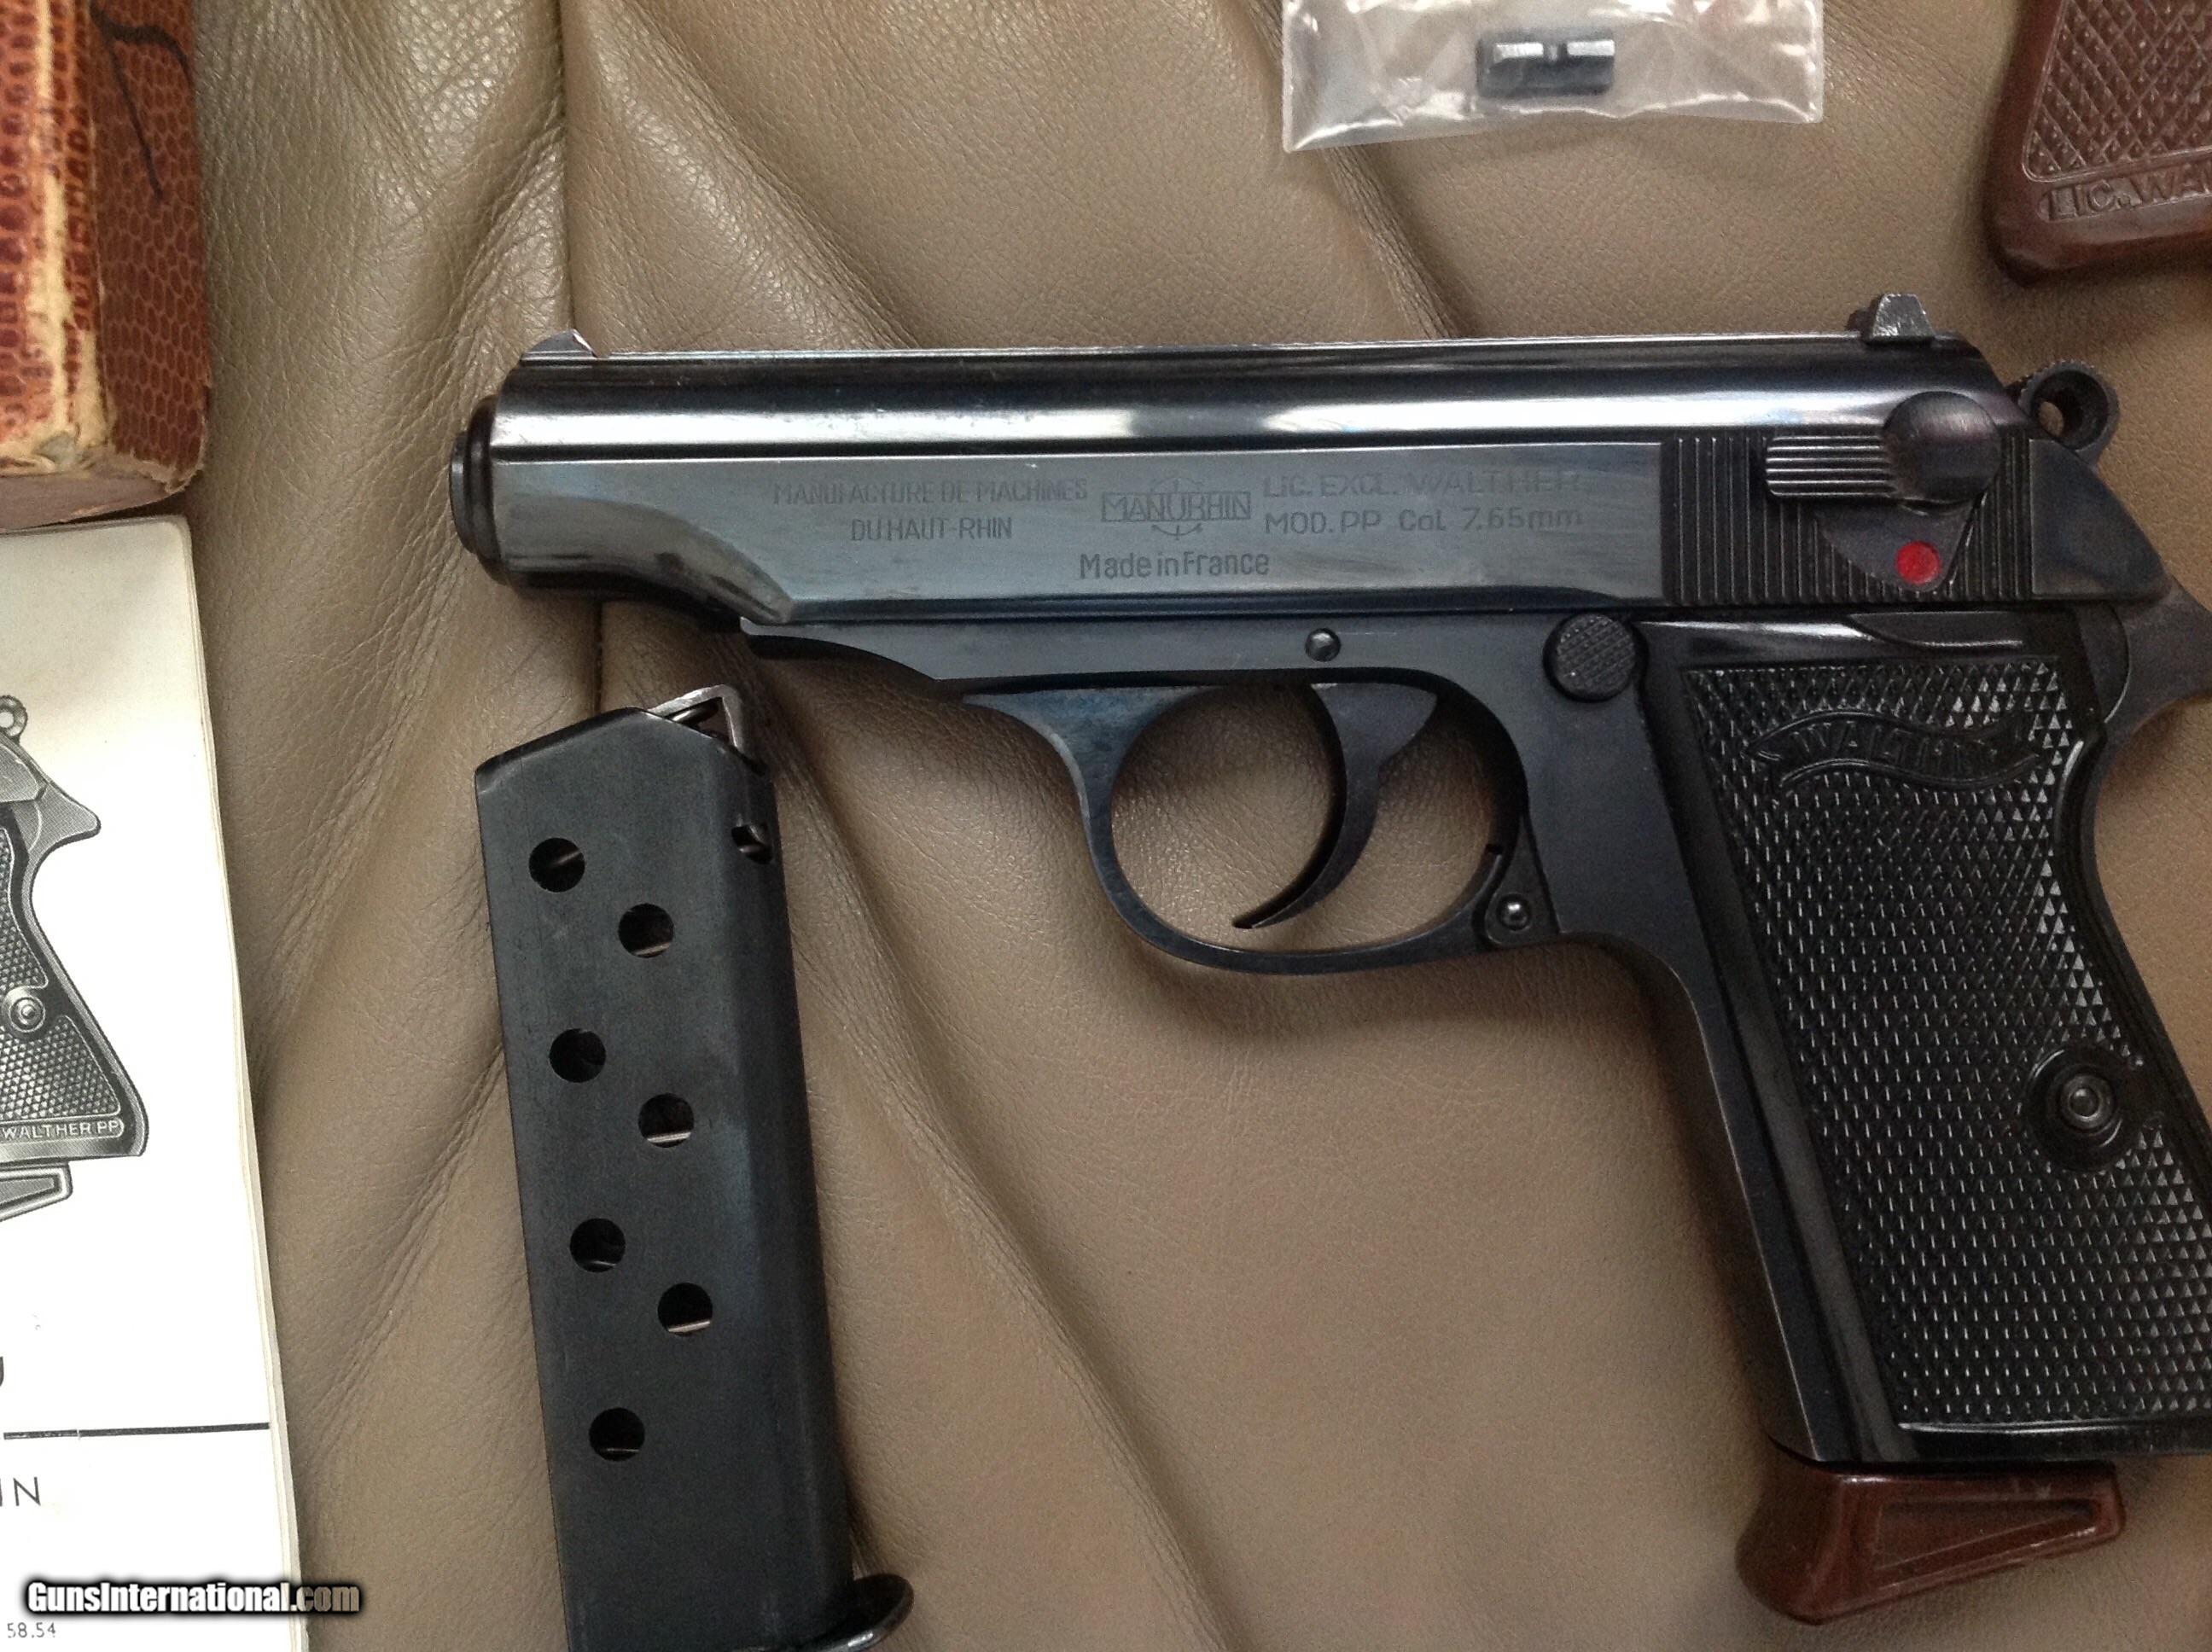 walther manurhin pp 32 acp mfg in france 99 blue in box with rh gunsinternational com Walther PPK 32 Auto Walther 32 PPK S Serial Chart